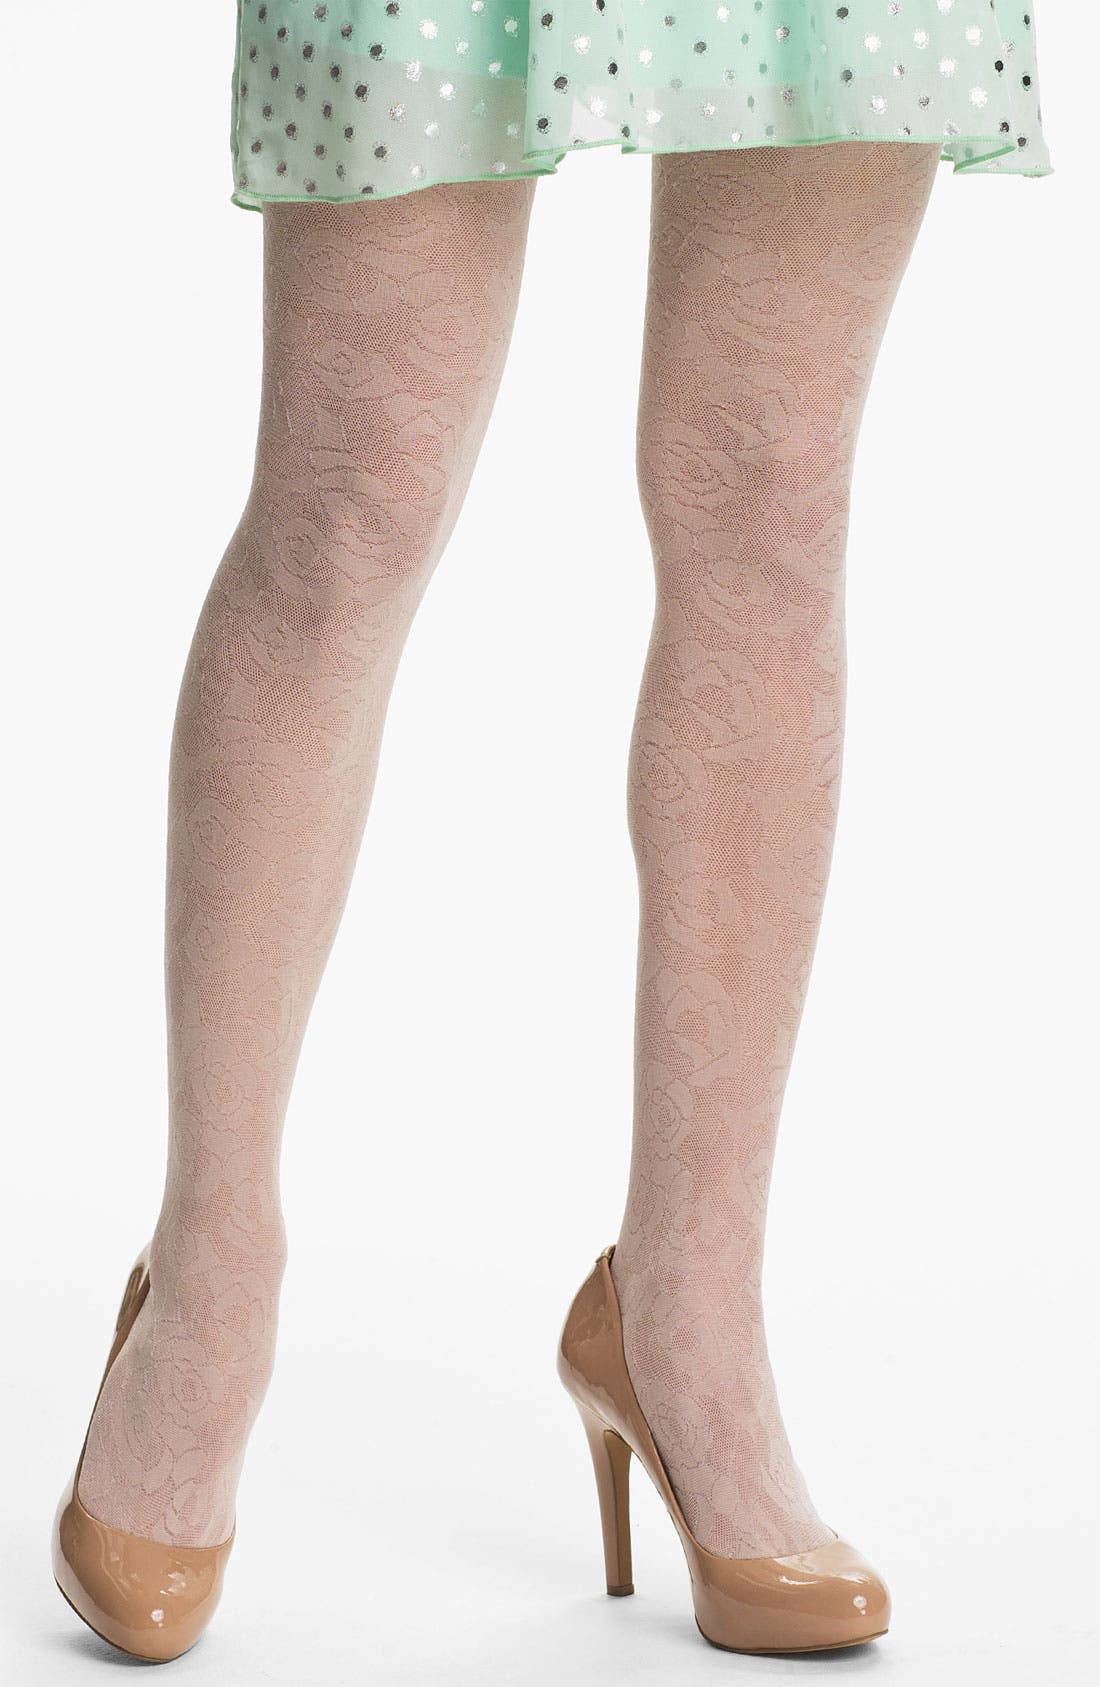 Alternate Image 1 Selected - DKNY Laser Cut Lace Tights